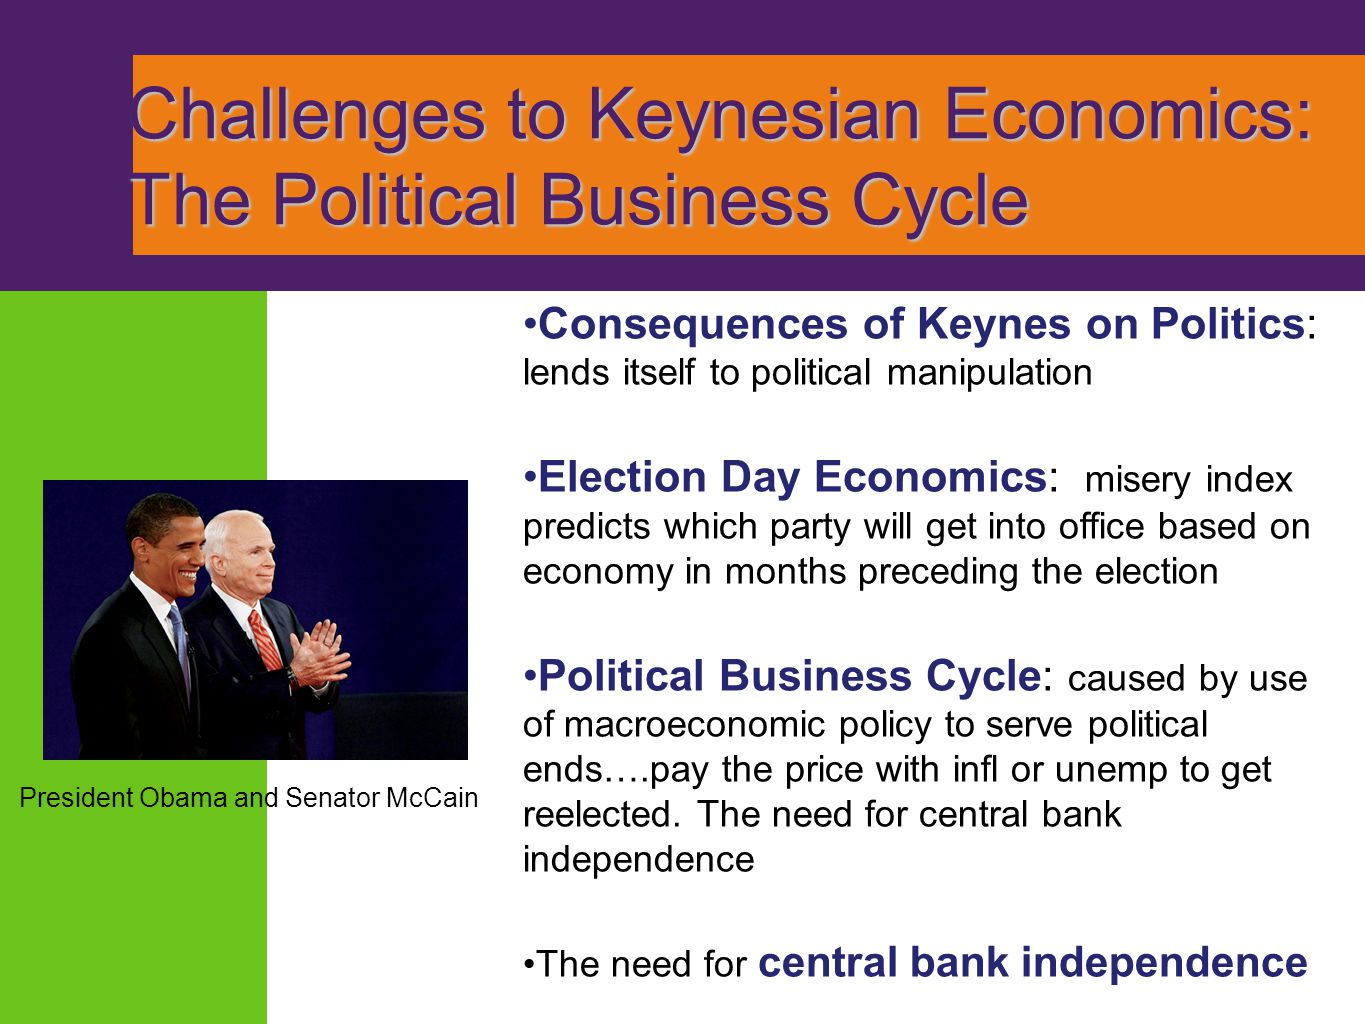 Challenges to Keynesian Economics: The Political Business Cycle